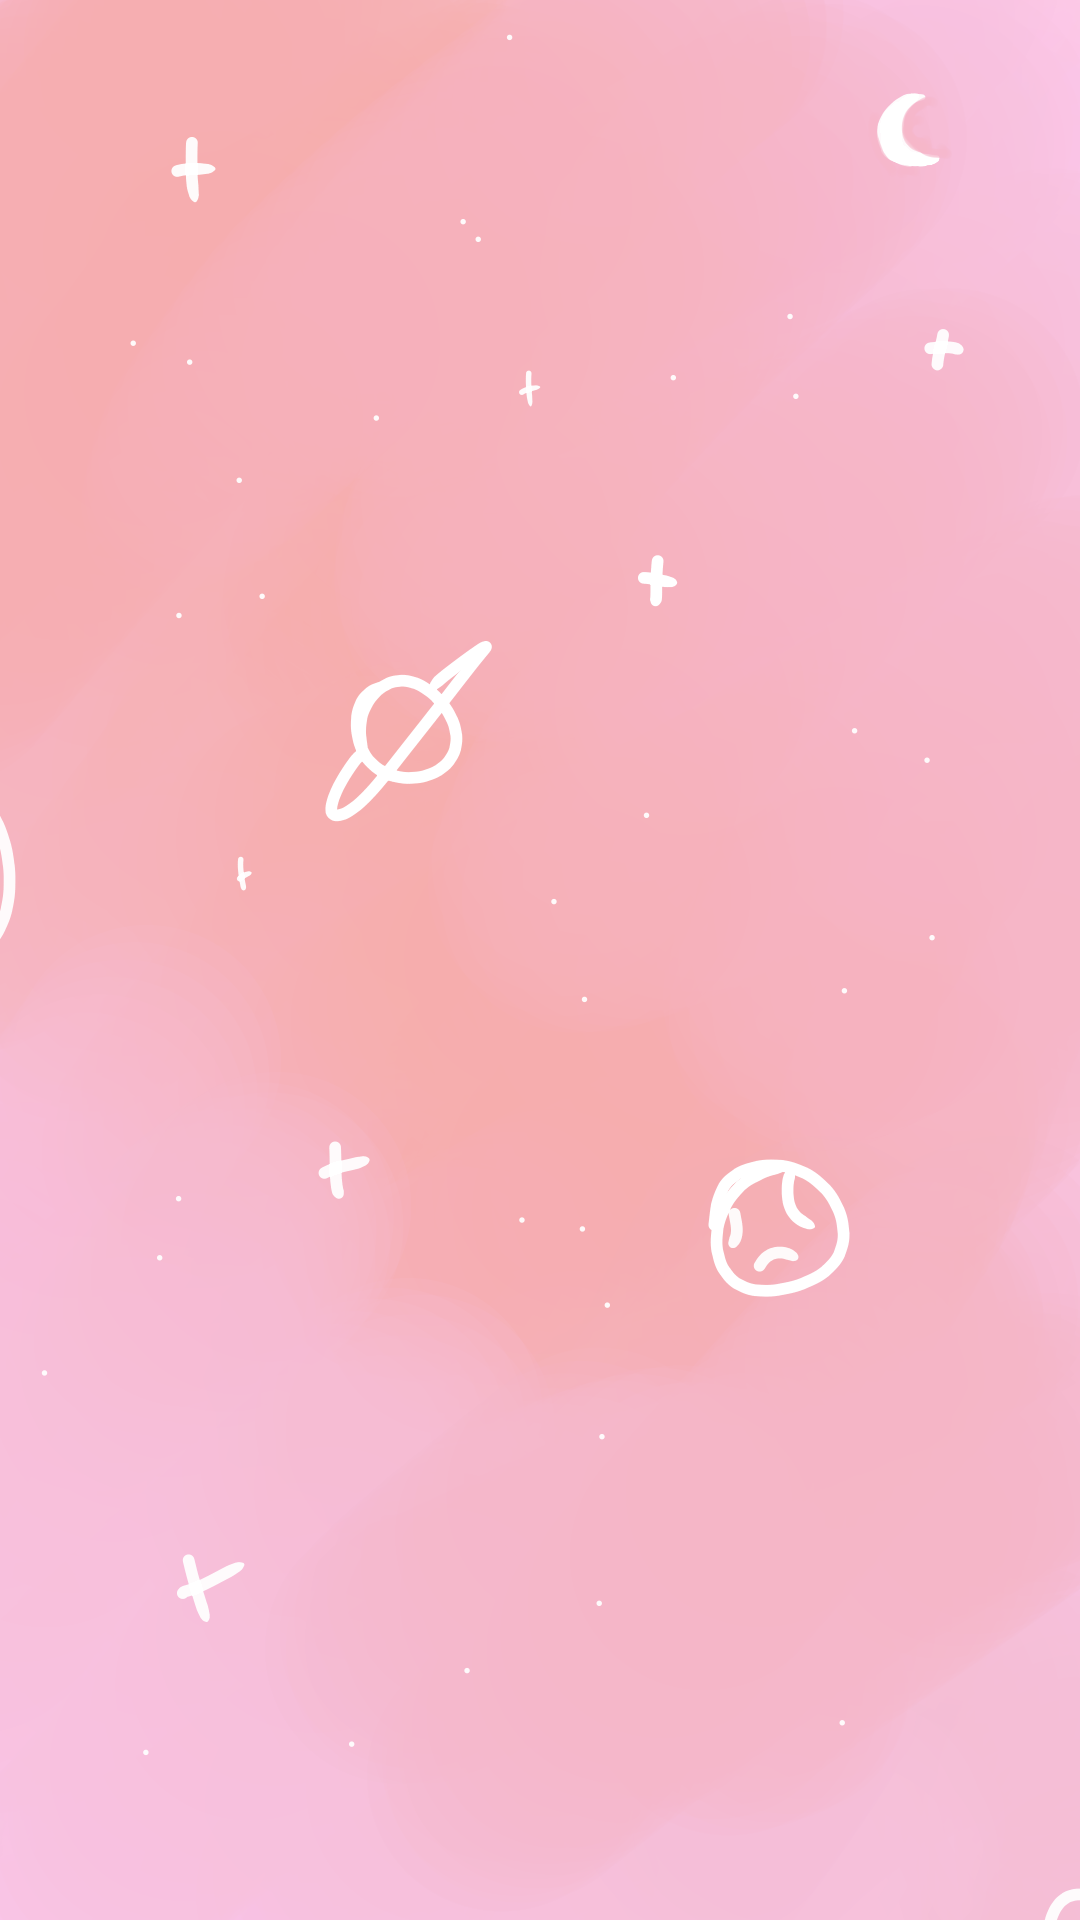 Outer spacey dat good shit cute wallpapers iphone - Spacey wallpaper ...